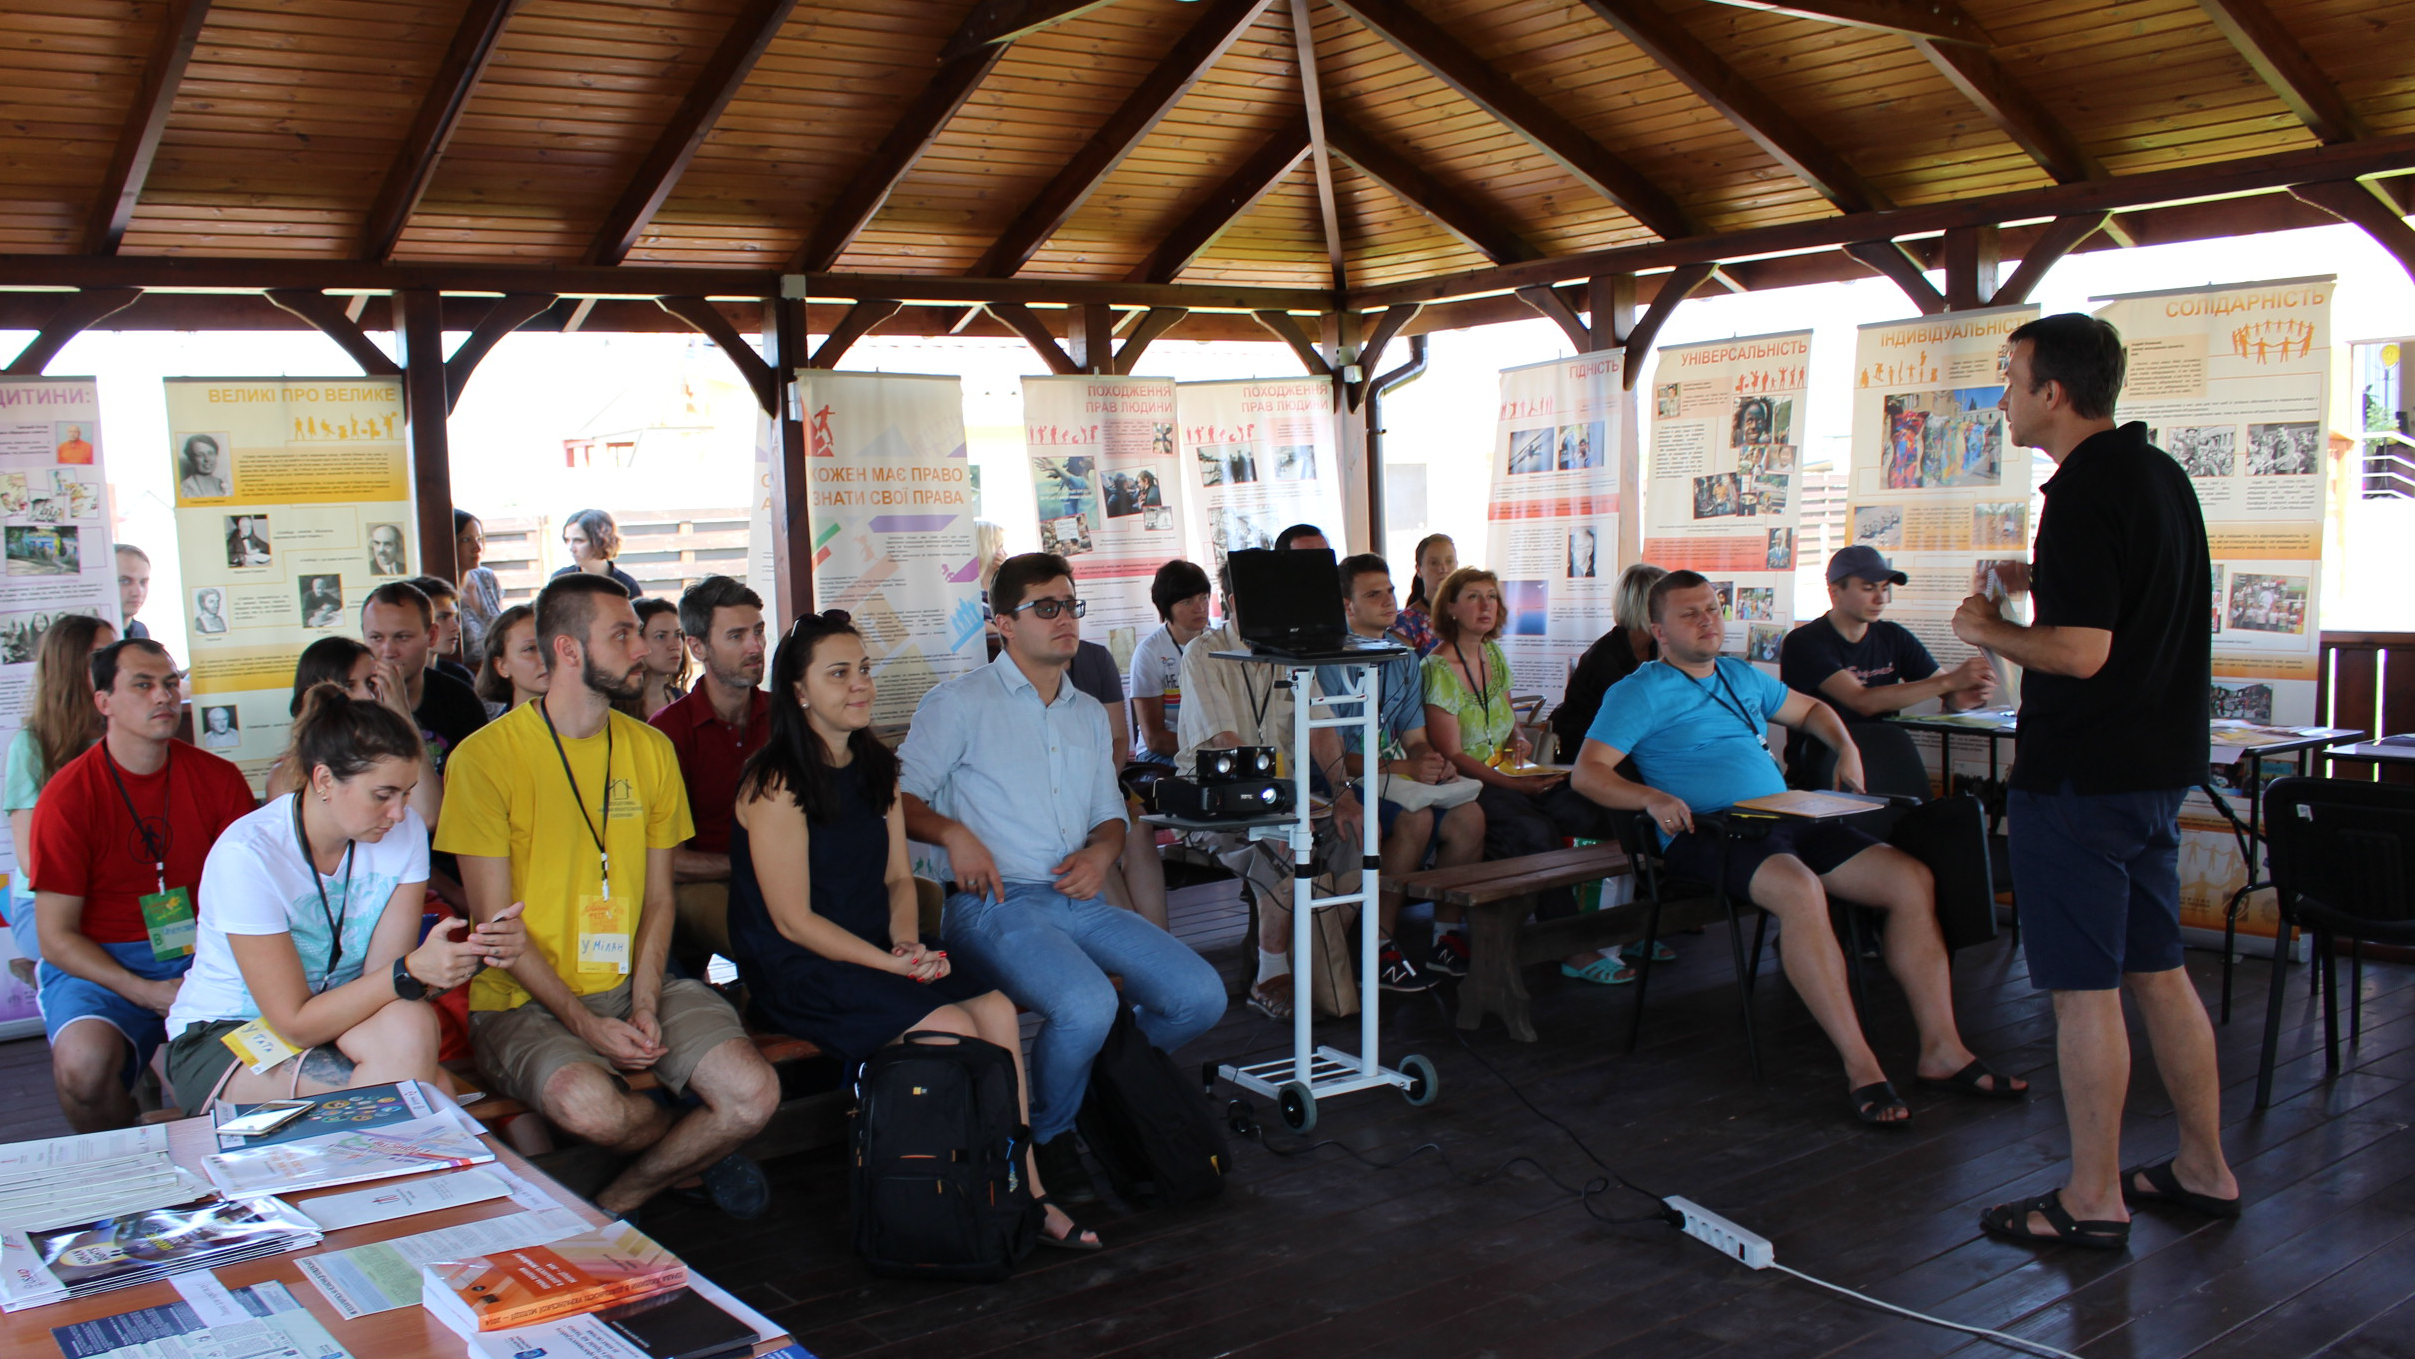 Serhiy Burov hosts a discussion as part of Educational Human Rights Fest 2018.